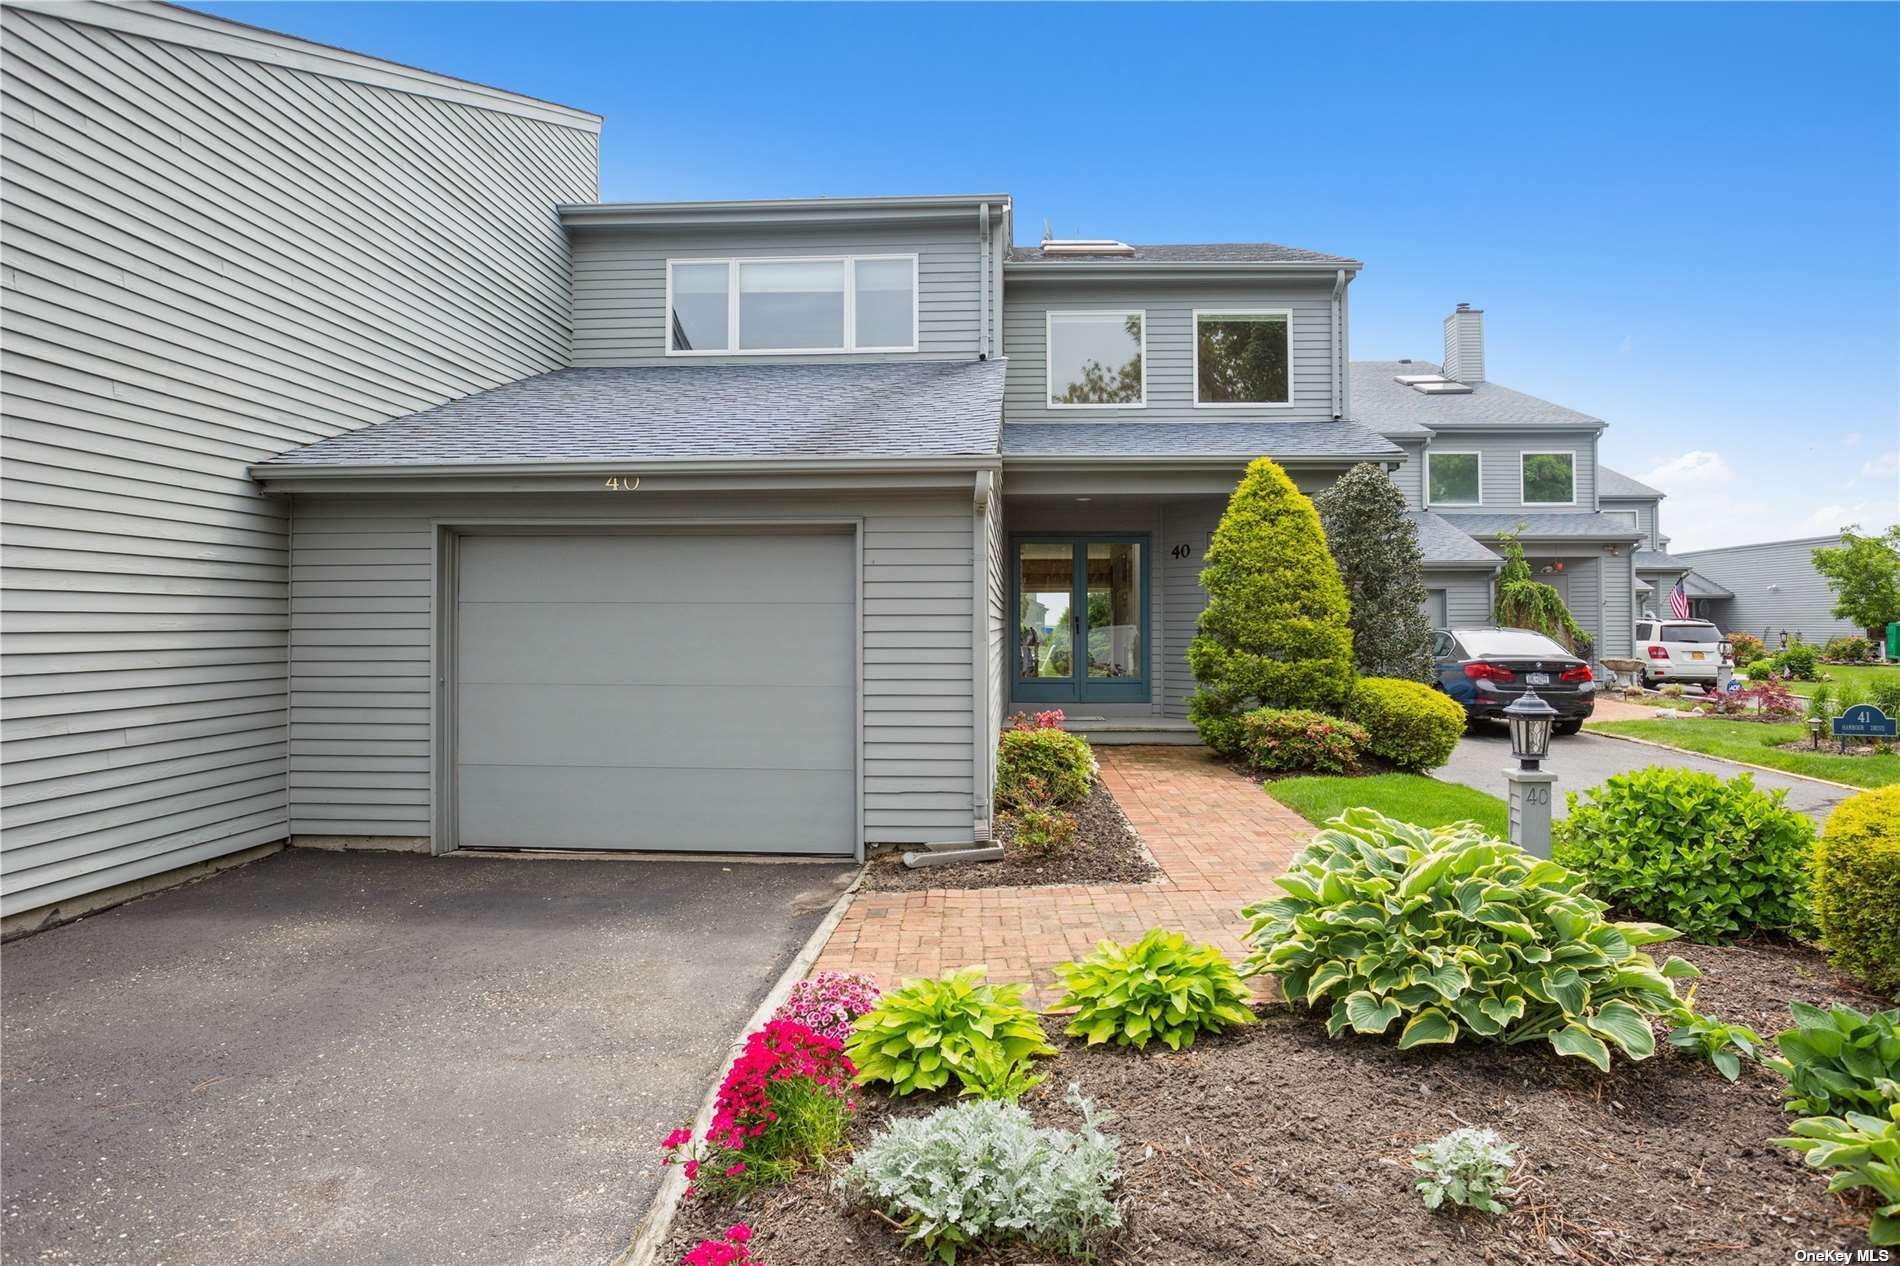 40 Harbour Drive #40, Blue Point, NY 11715 - MLS#: 3317221